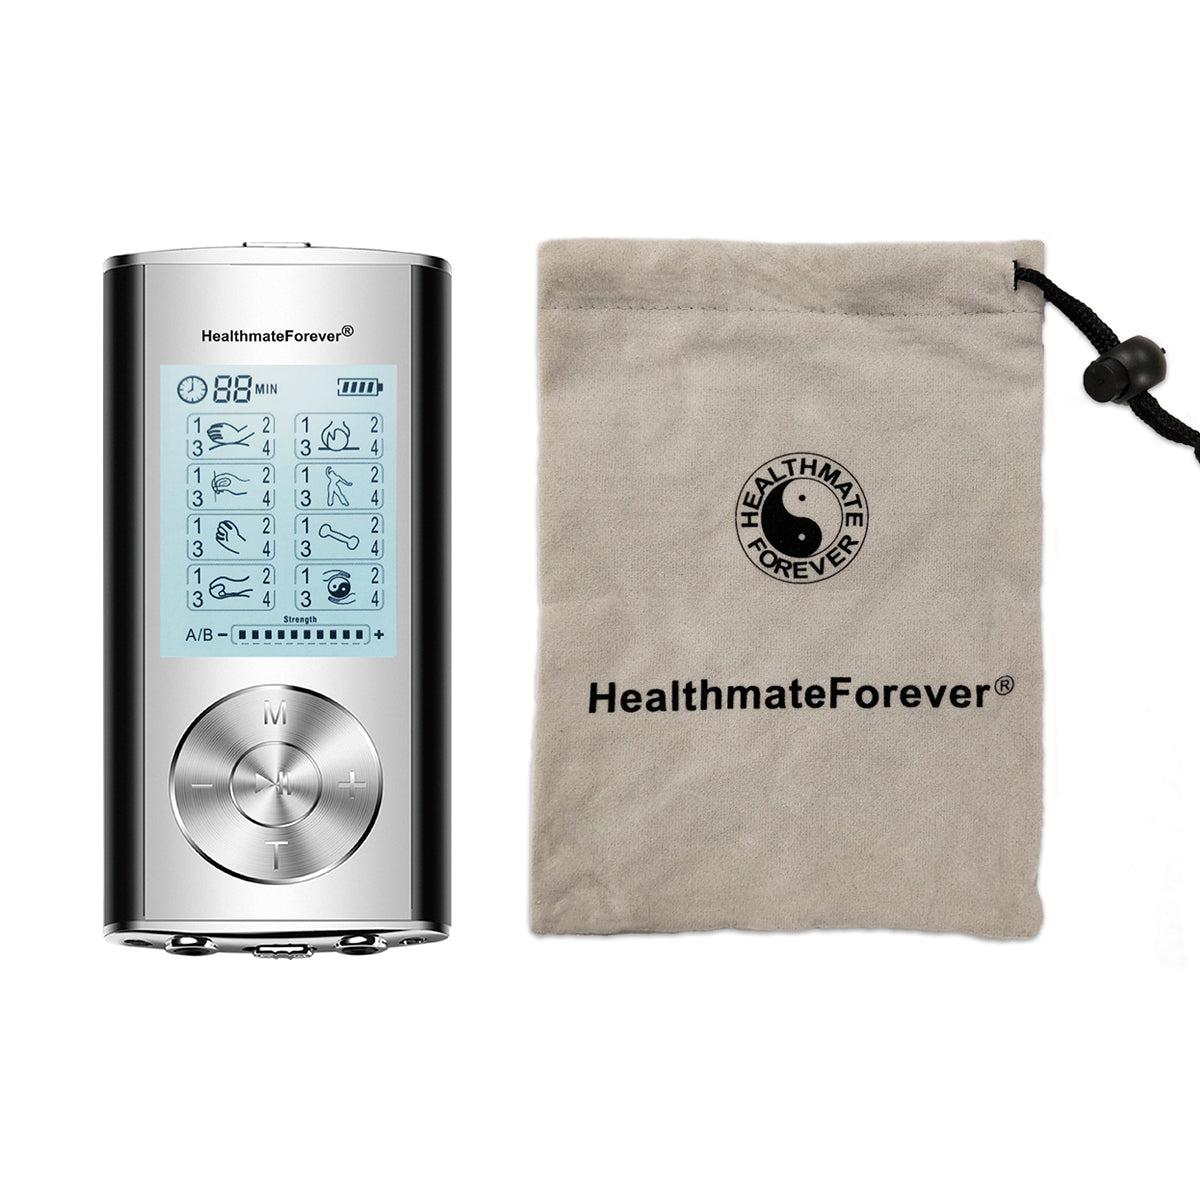 New Arrival - 2020 Version 32 Modes HM32AB TENS Unit & Muscle Stimulator - 2 Year Warranty - HealthmateForever